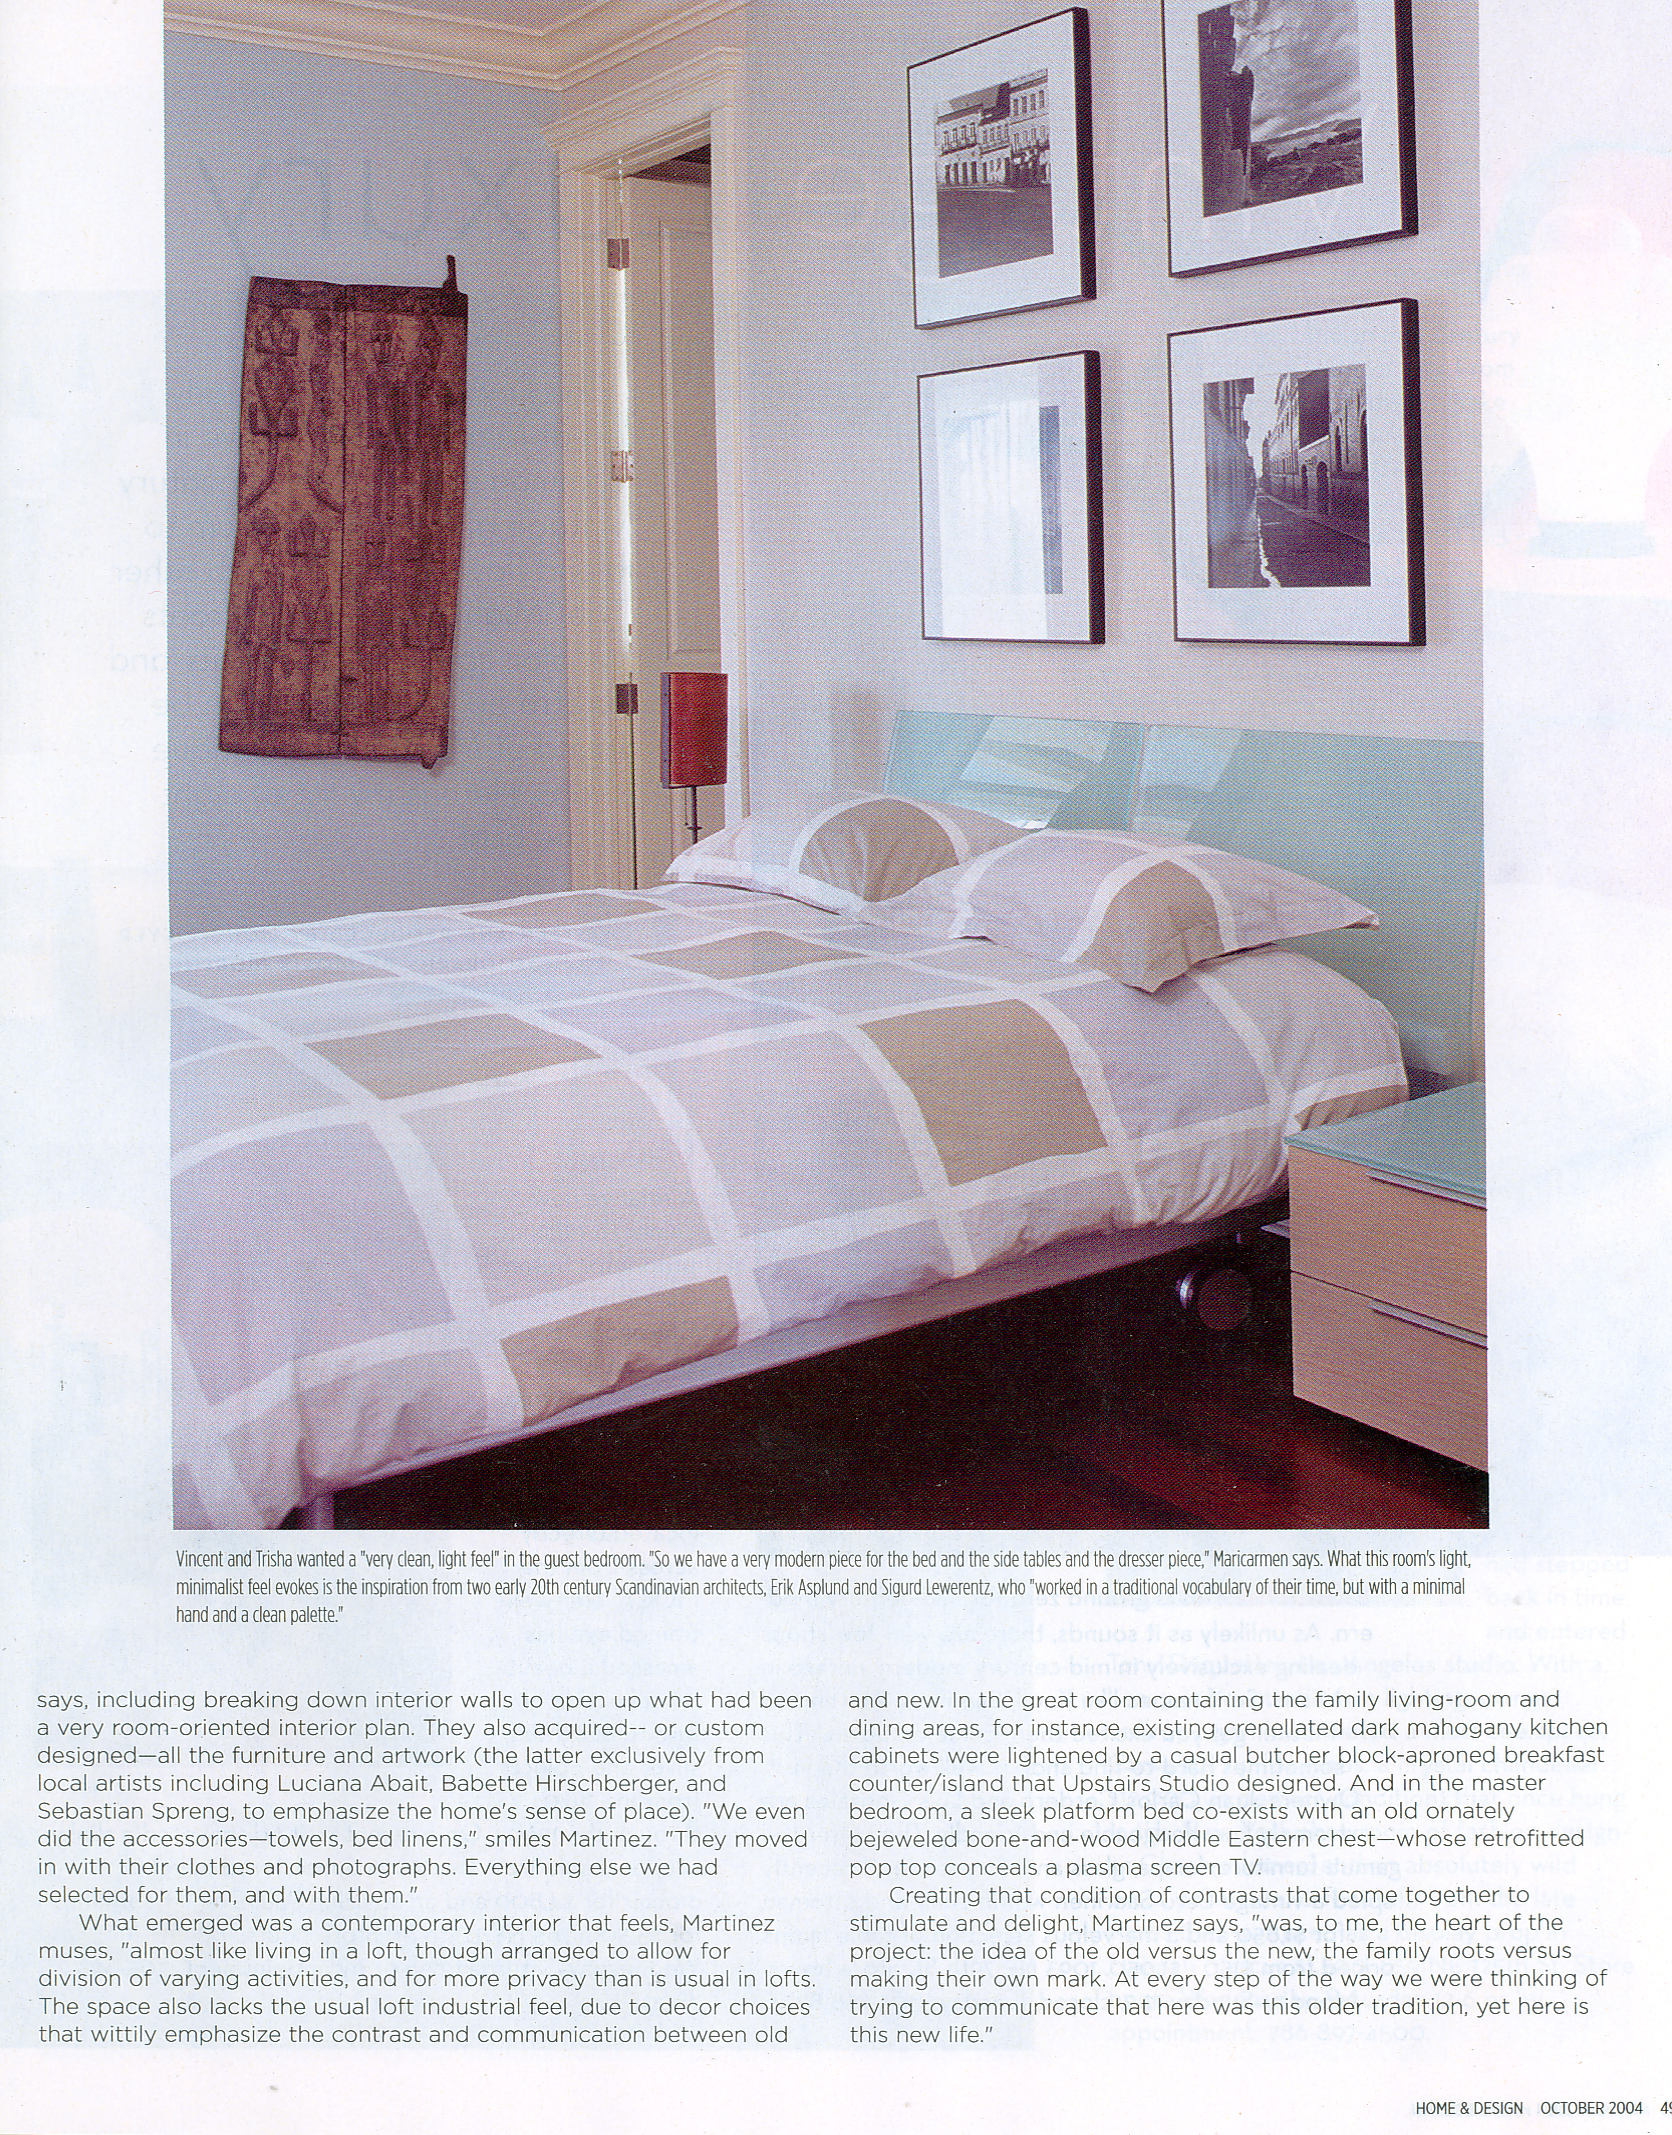 Home&Design October2004 article page 6.jpg